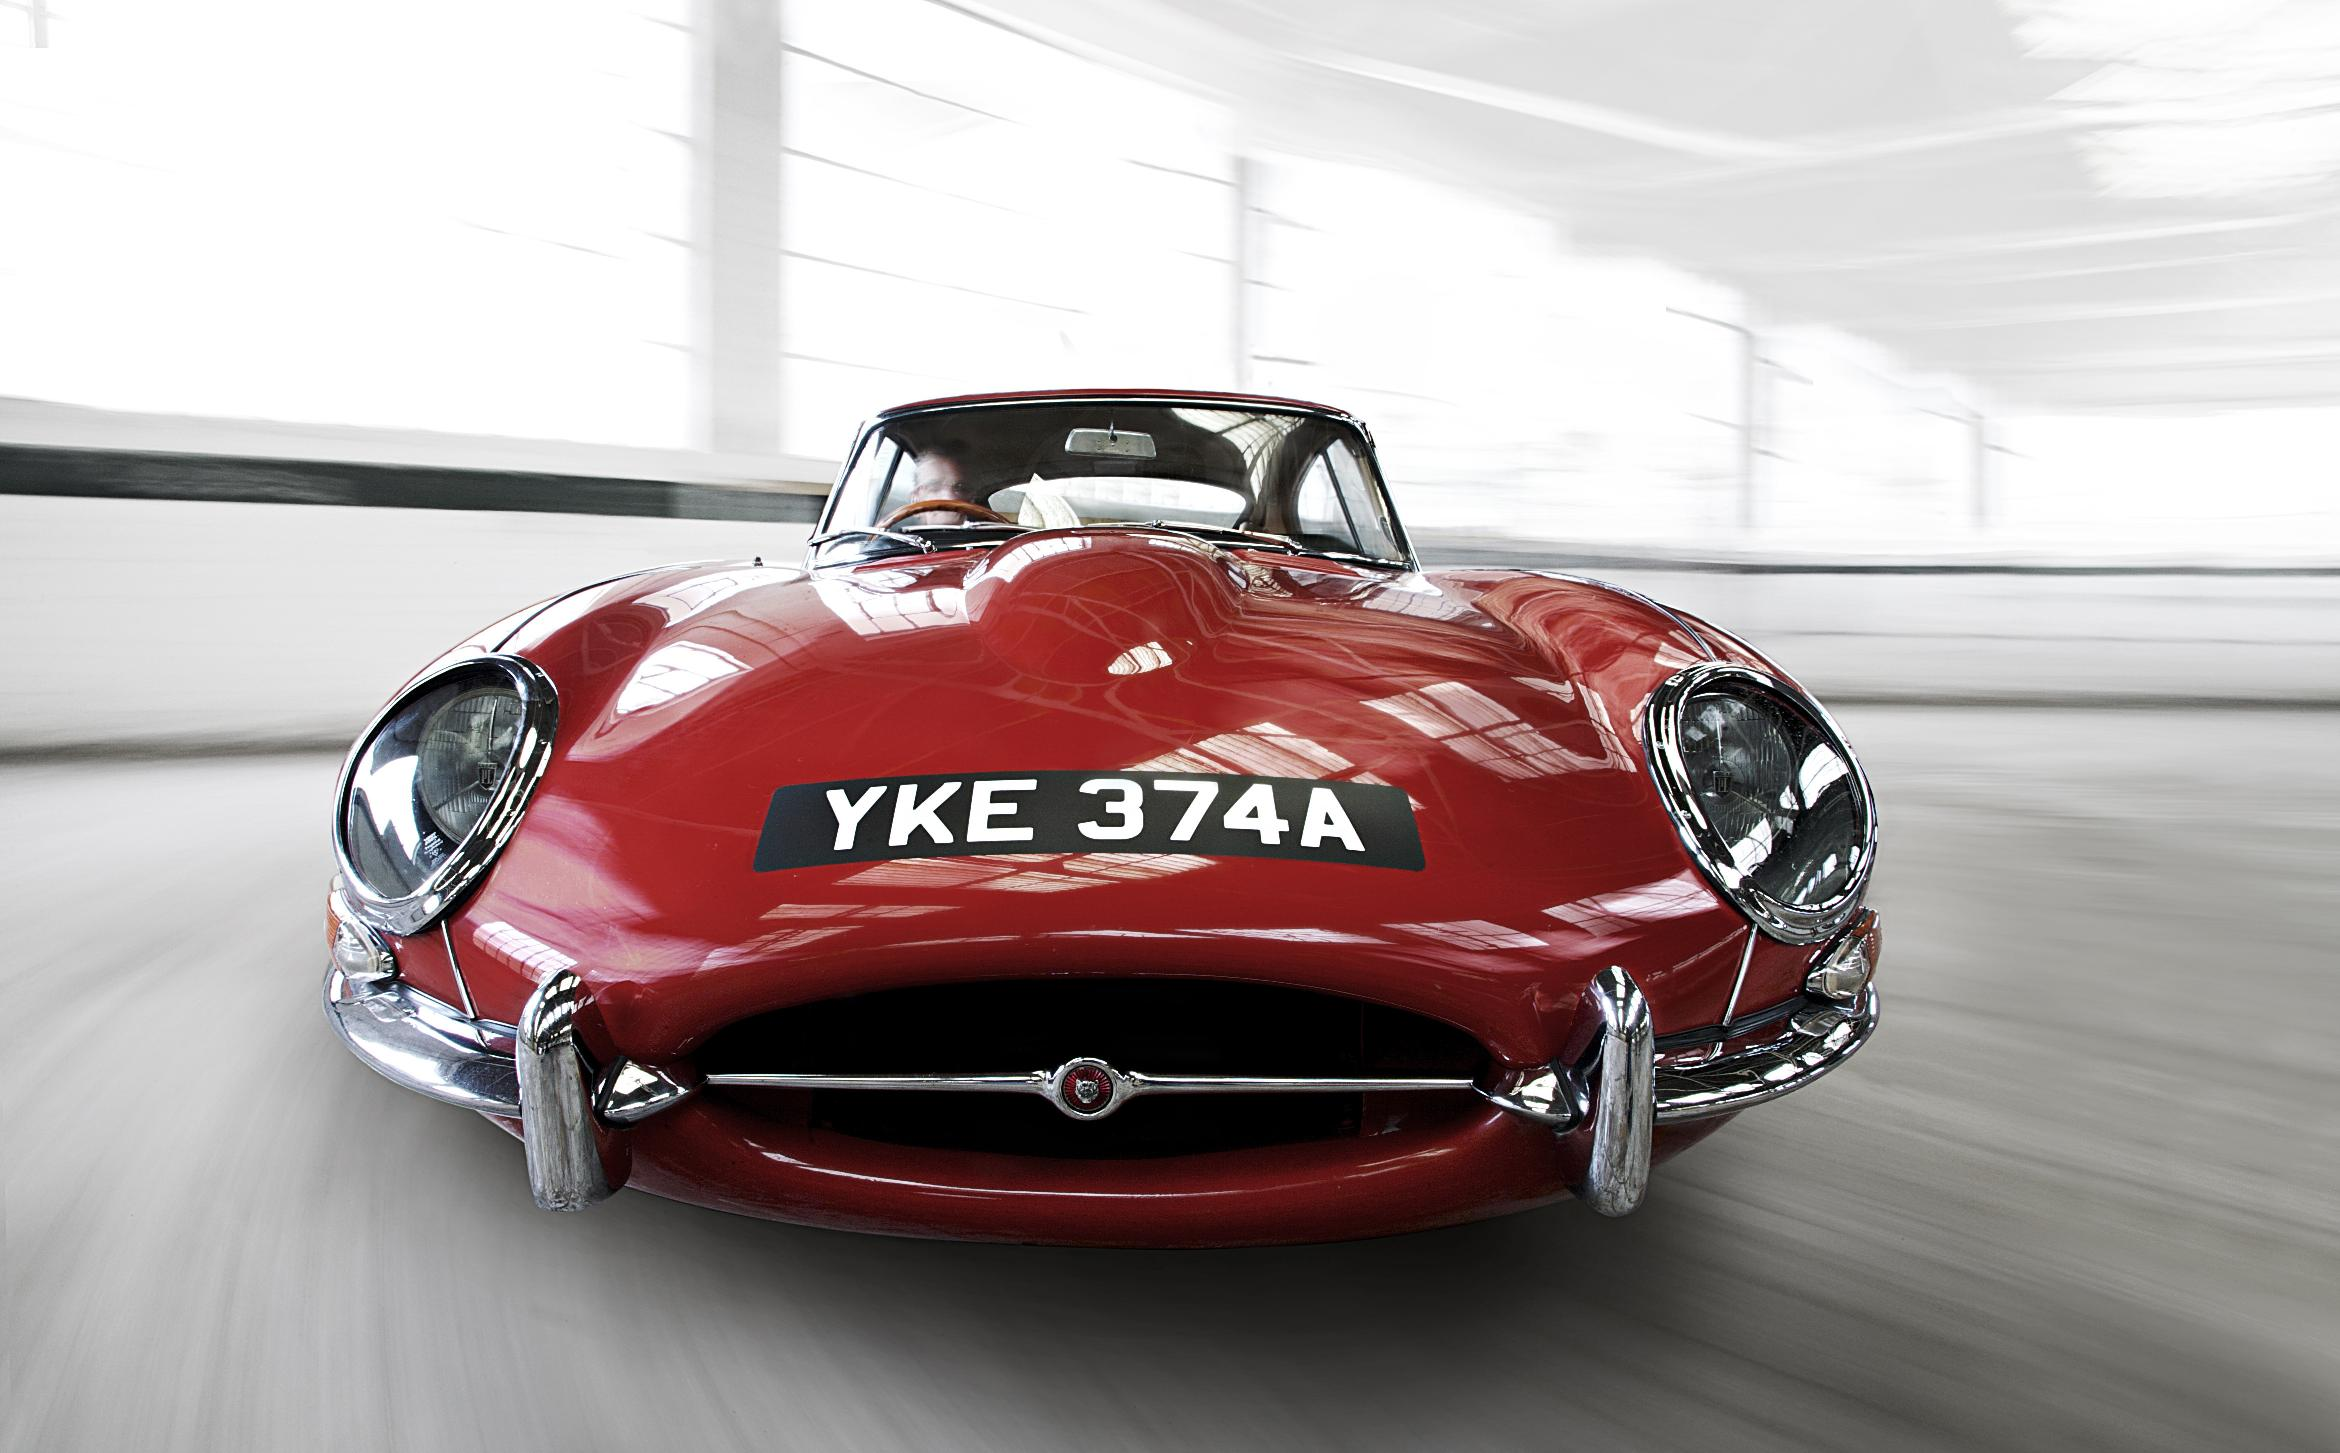 stunning jaguar e type celebrates 50th anniversary wheel world reviews. Black Bedroom Furniture Sets. Home Design Ideas